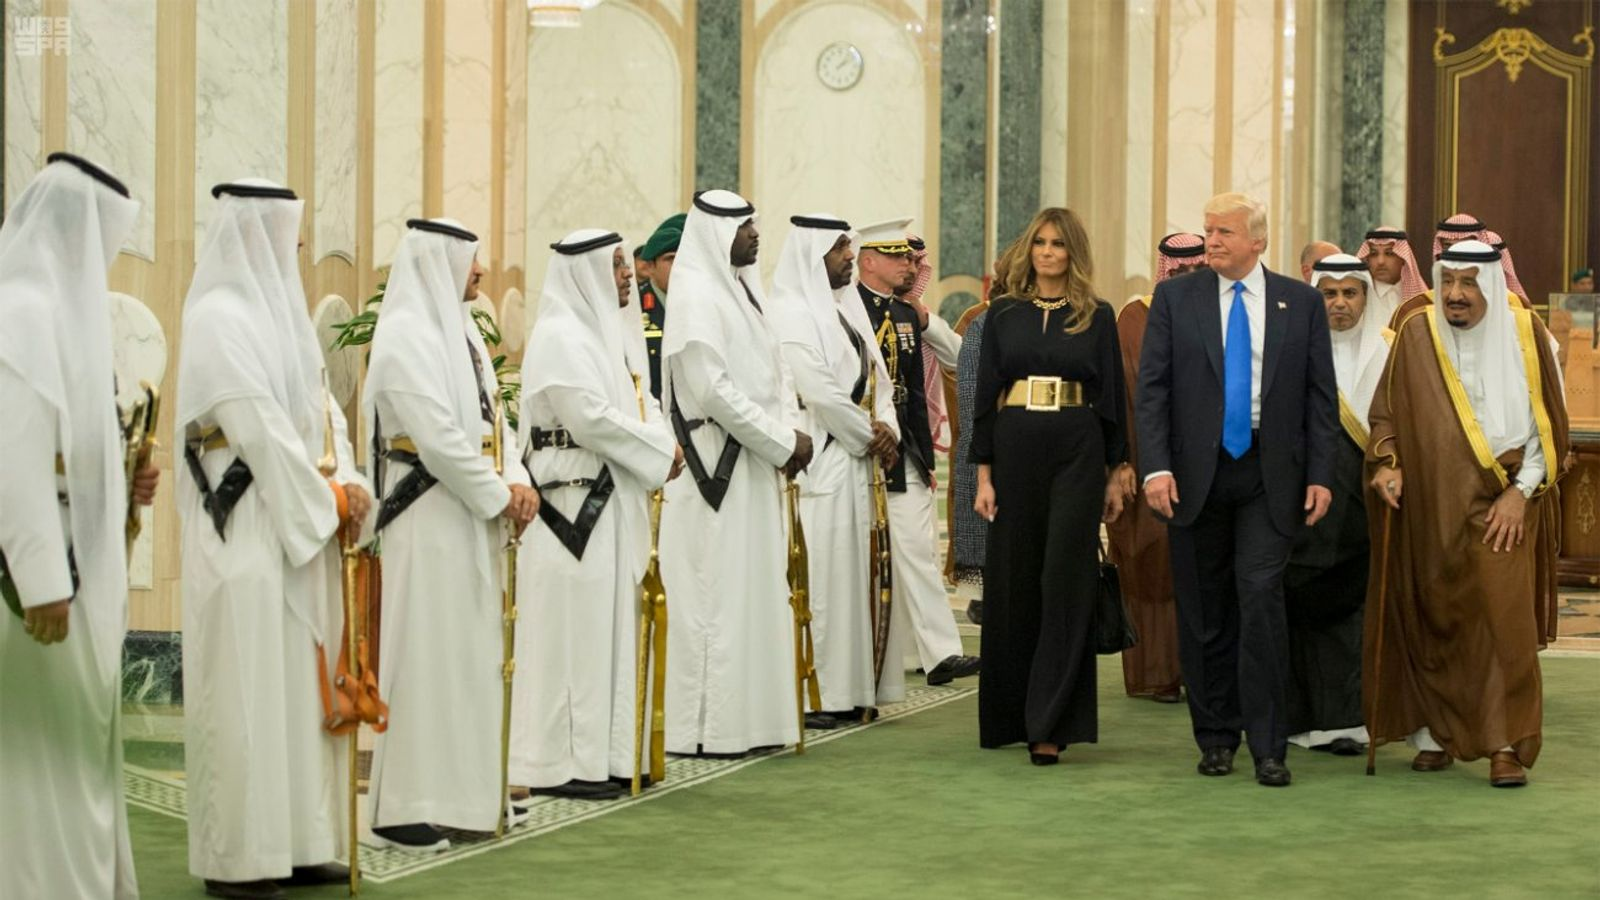 Trump Advises Muslim Countries to Take Lead in Fighting Extremism